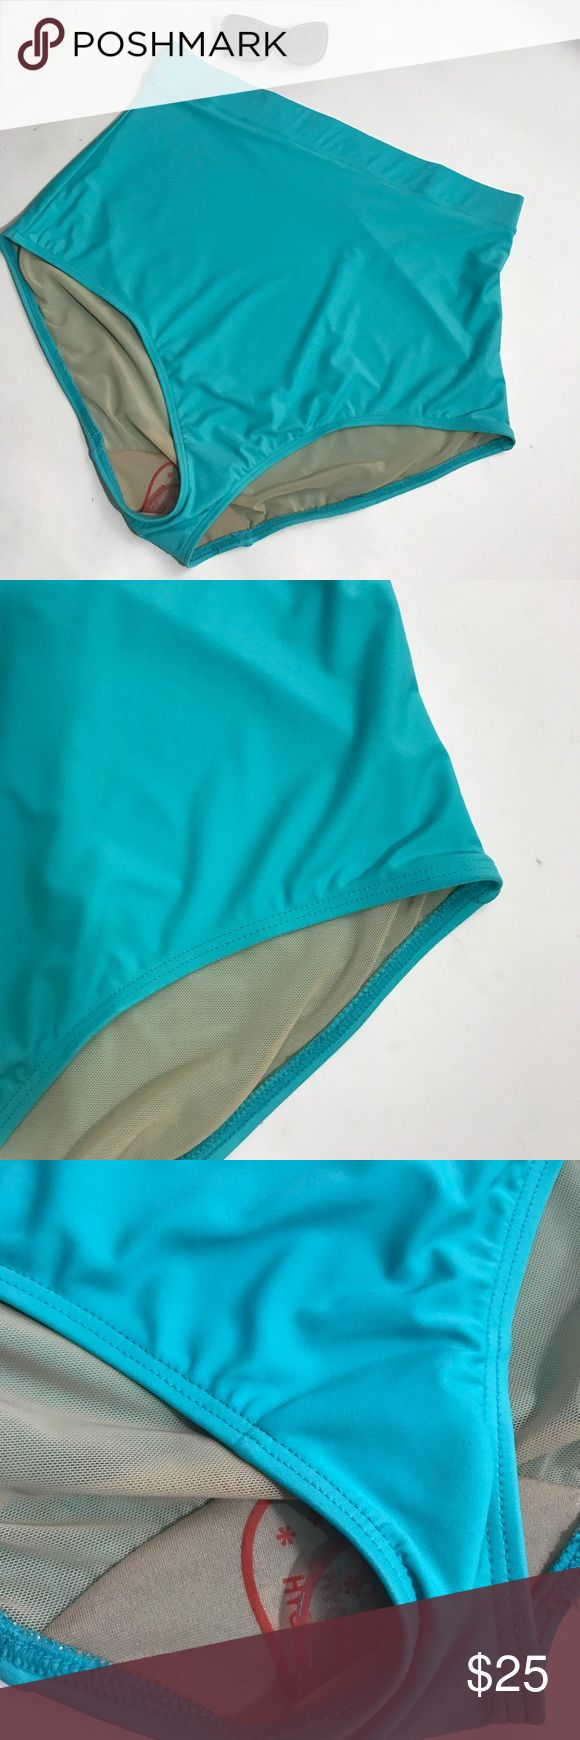 Lane Bryant swim cacique bathing suit bottoms New without tag,tags has been mark out to prevent store return...Various sizes swim bottom teal green high waist and thick waist band lined bathing suit bottom,hygienic liners still in place....see all photos before purchasing.Inventory300A8PE Swim by Cacique Lane Bryant Swim Bikinis